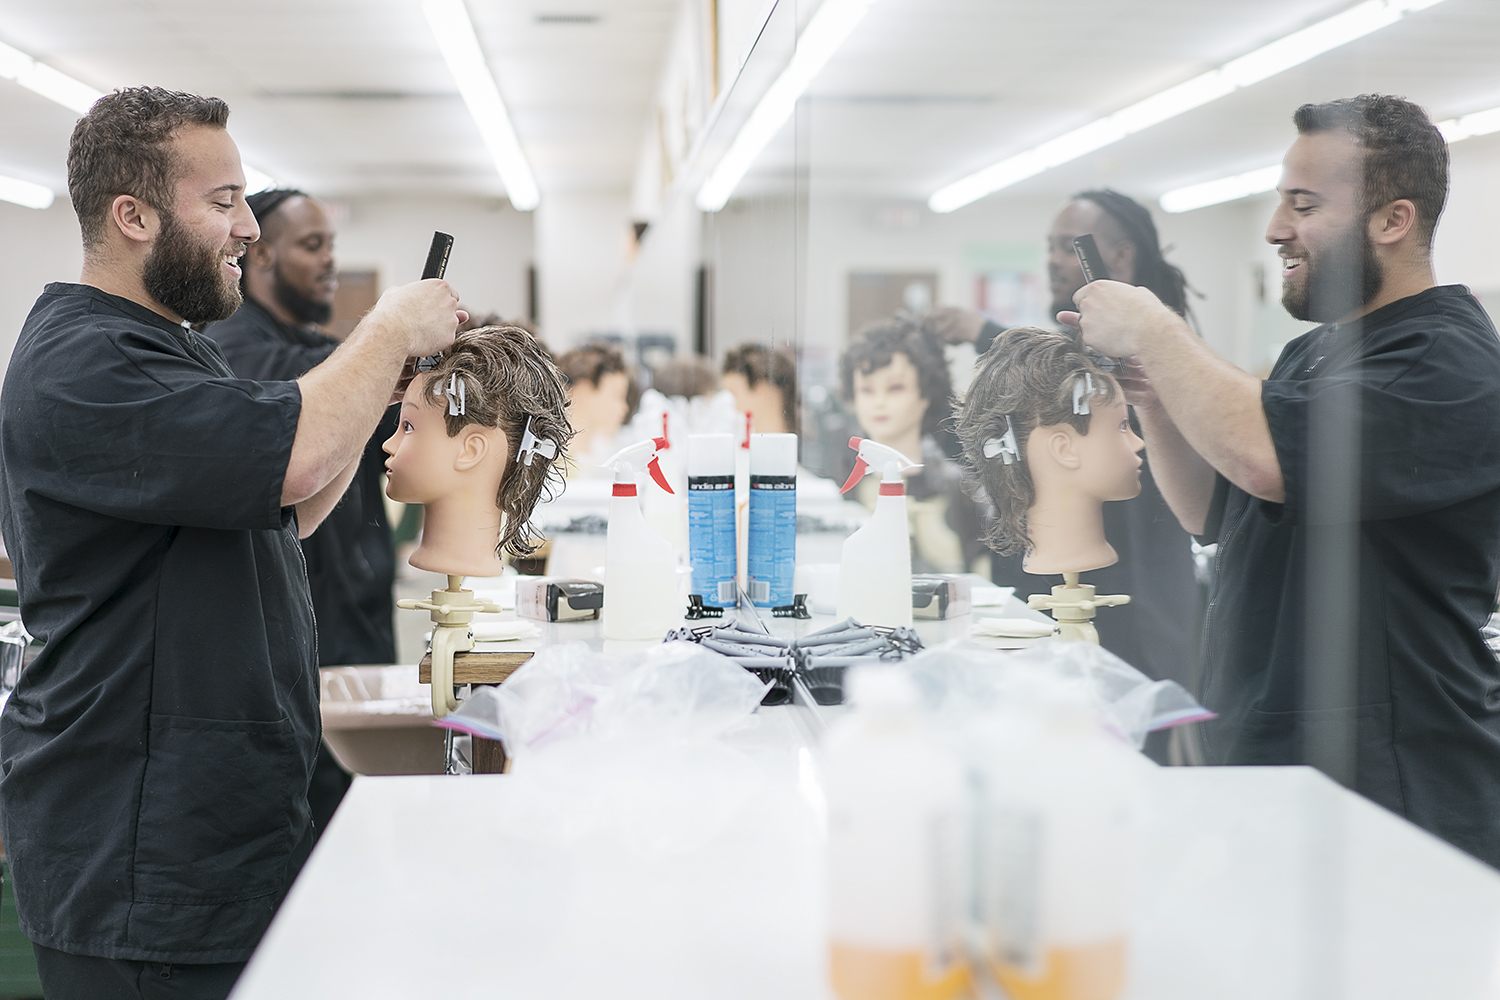 Flint, MI - Tuesday, February 6, 2018: Junior barbers Cole Stomp, 19, from Davison, and Tony Atlas, 32, from Flint practice on mannequins at the Flint Institute of Barbering.Tim Galloway for FlintSide